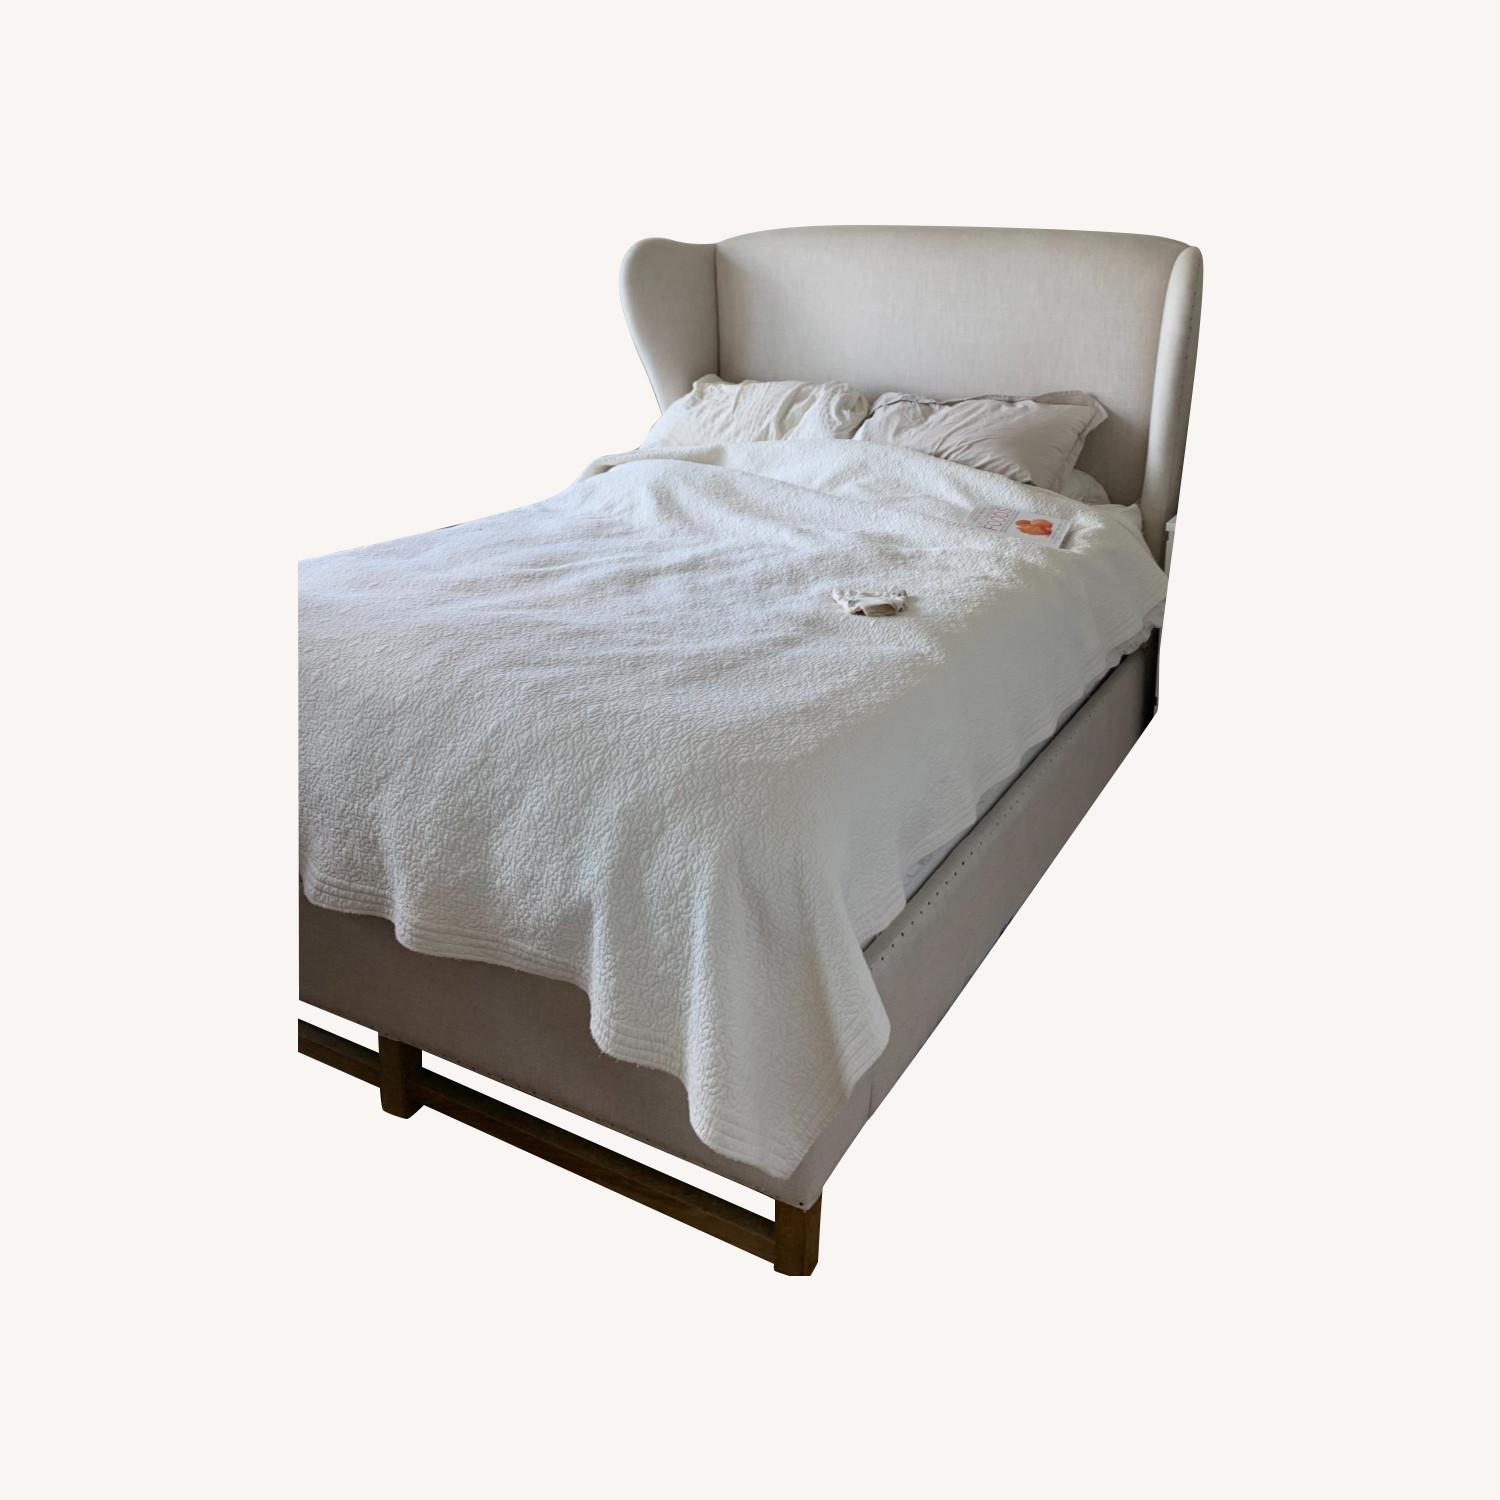 Restoration Hardware French Wing Queen Bed - image-0